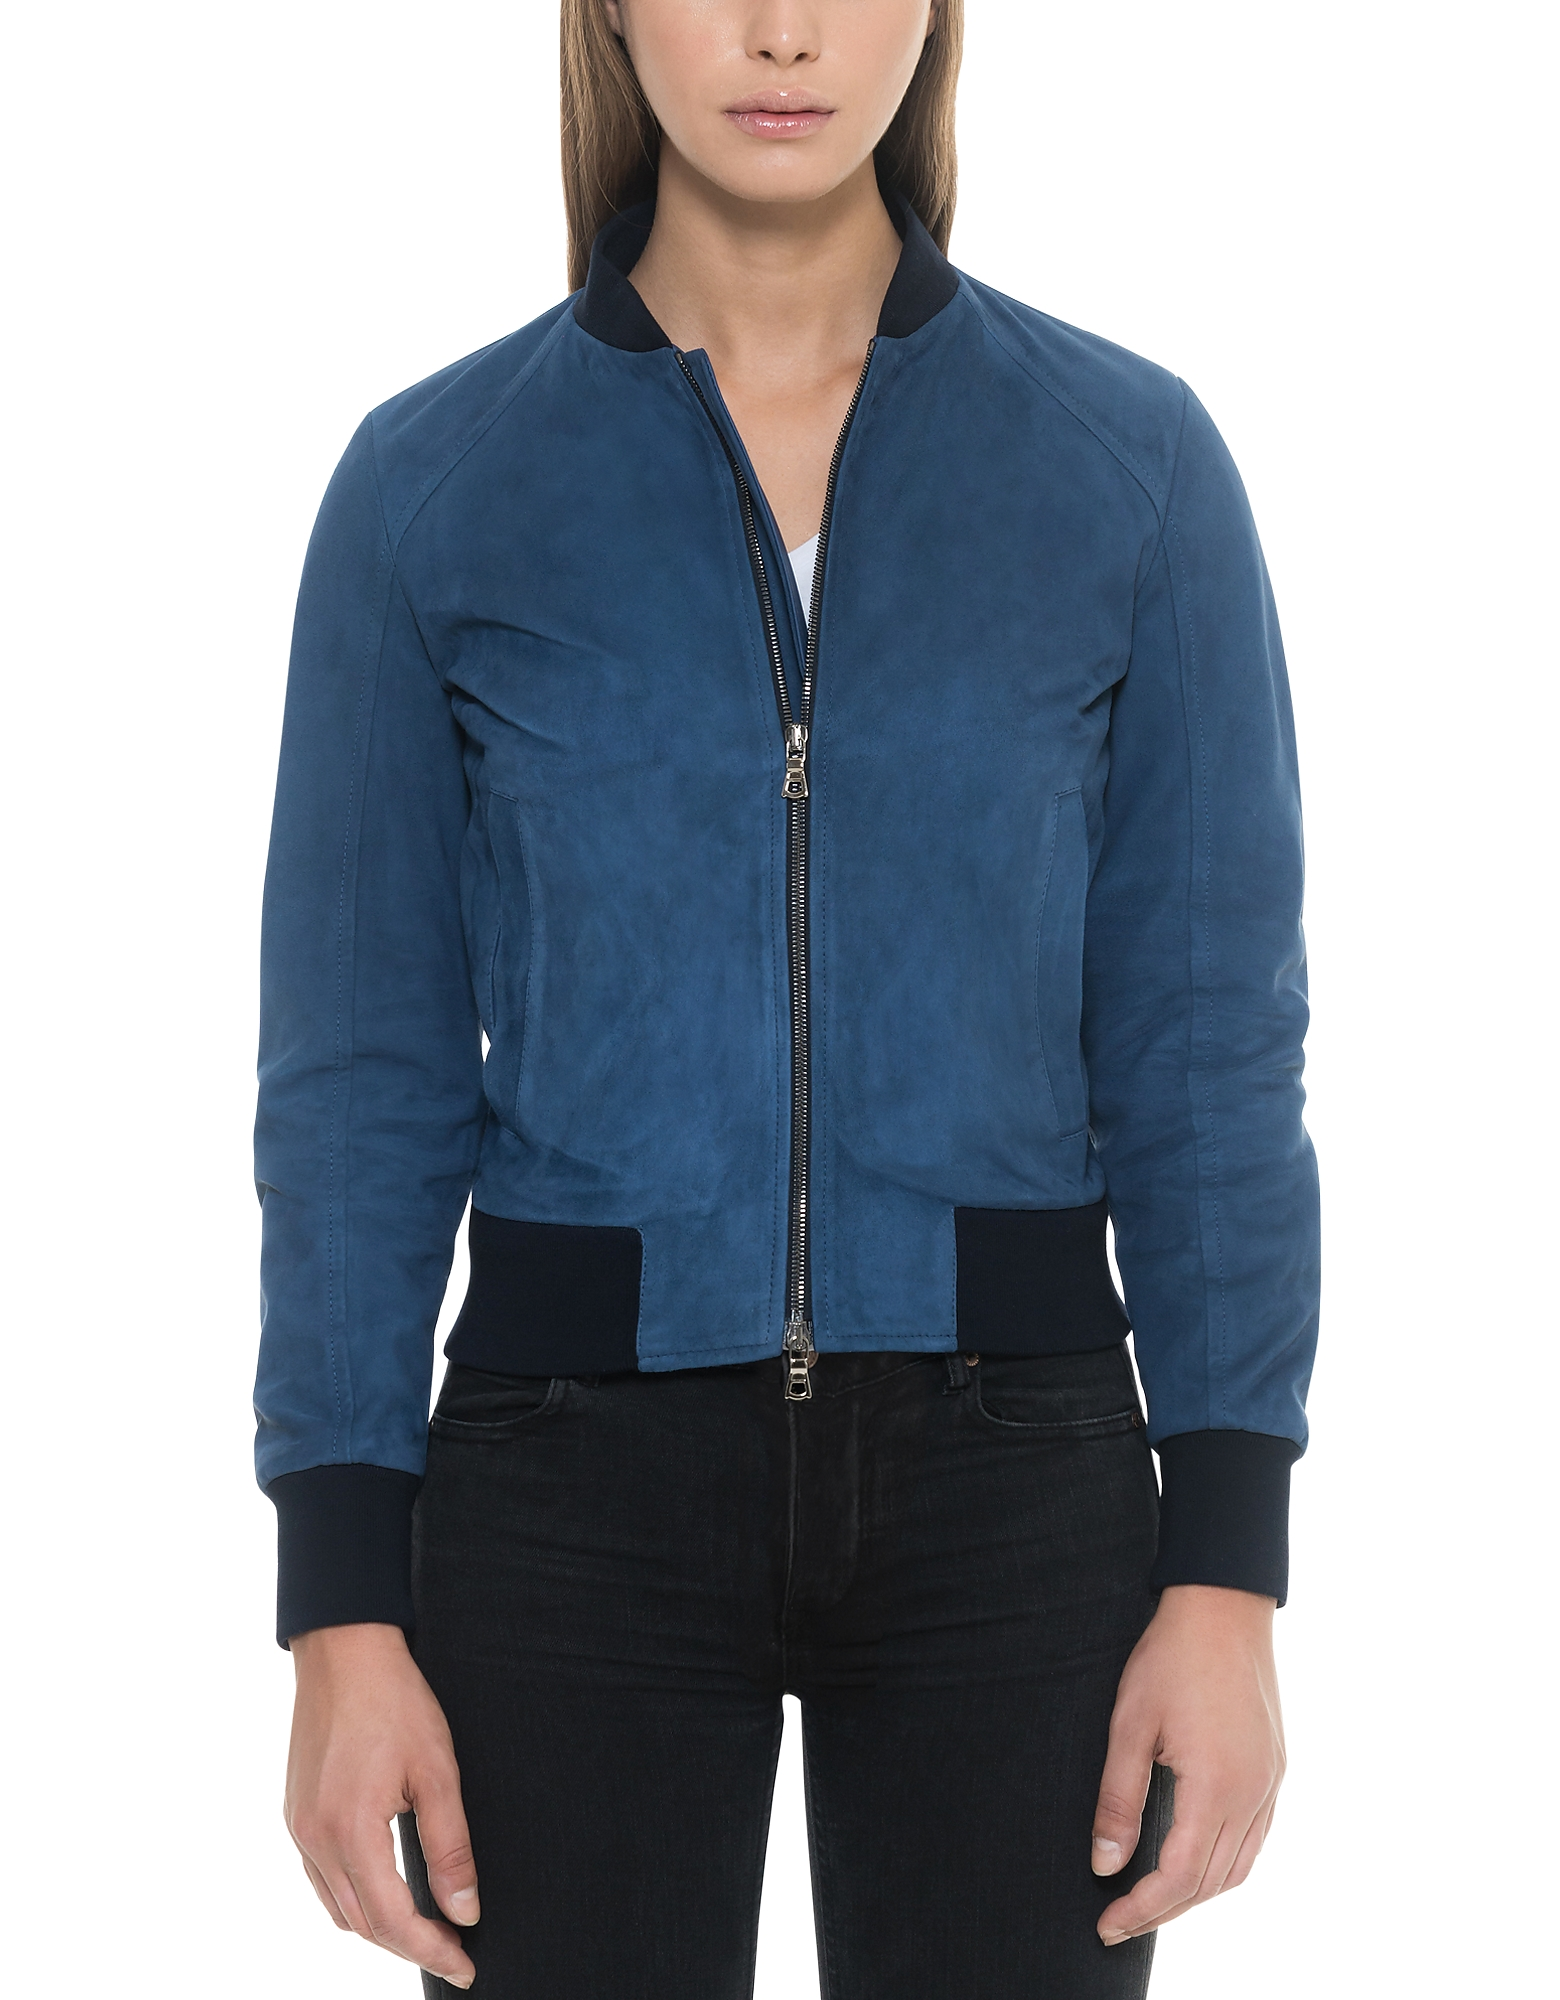 Forzieri Leather Jackets, Blue Suede Women's Bomber Jacket